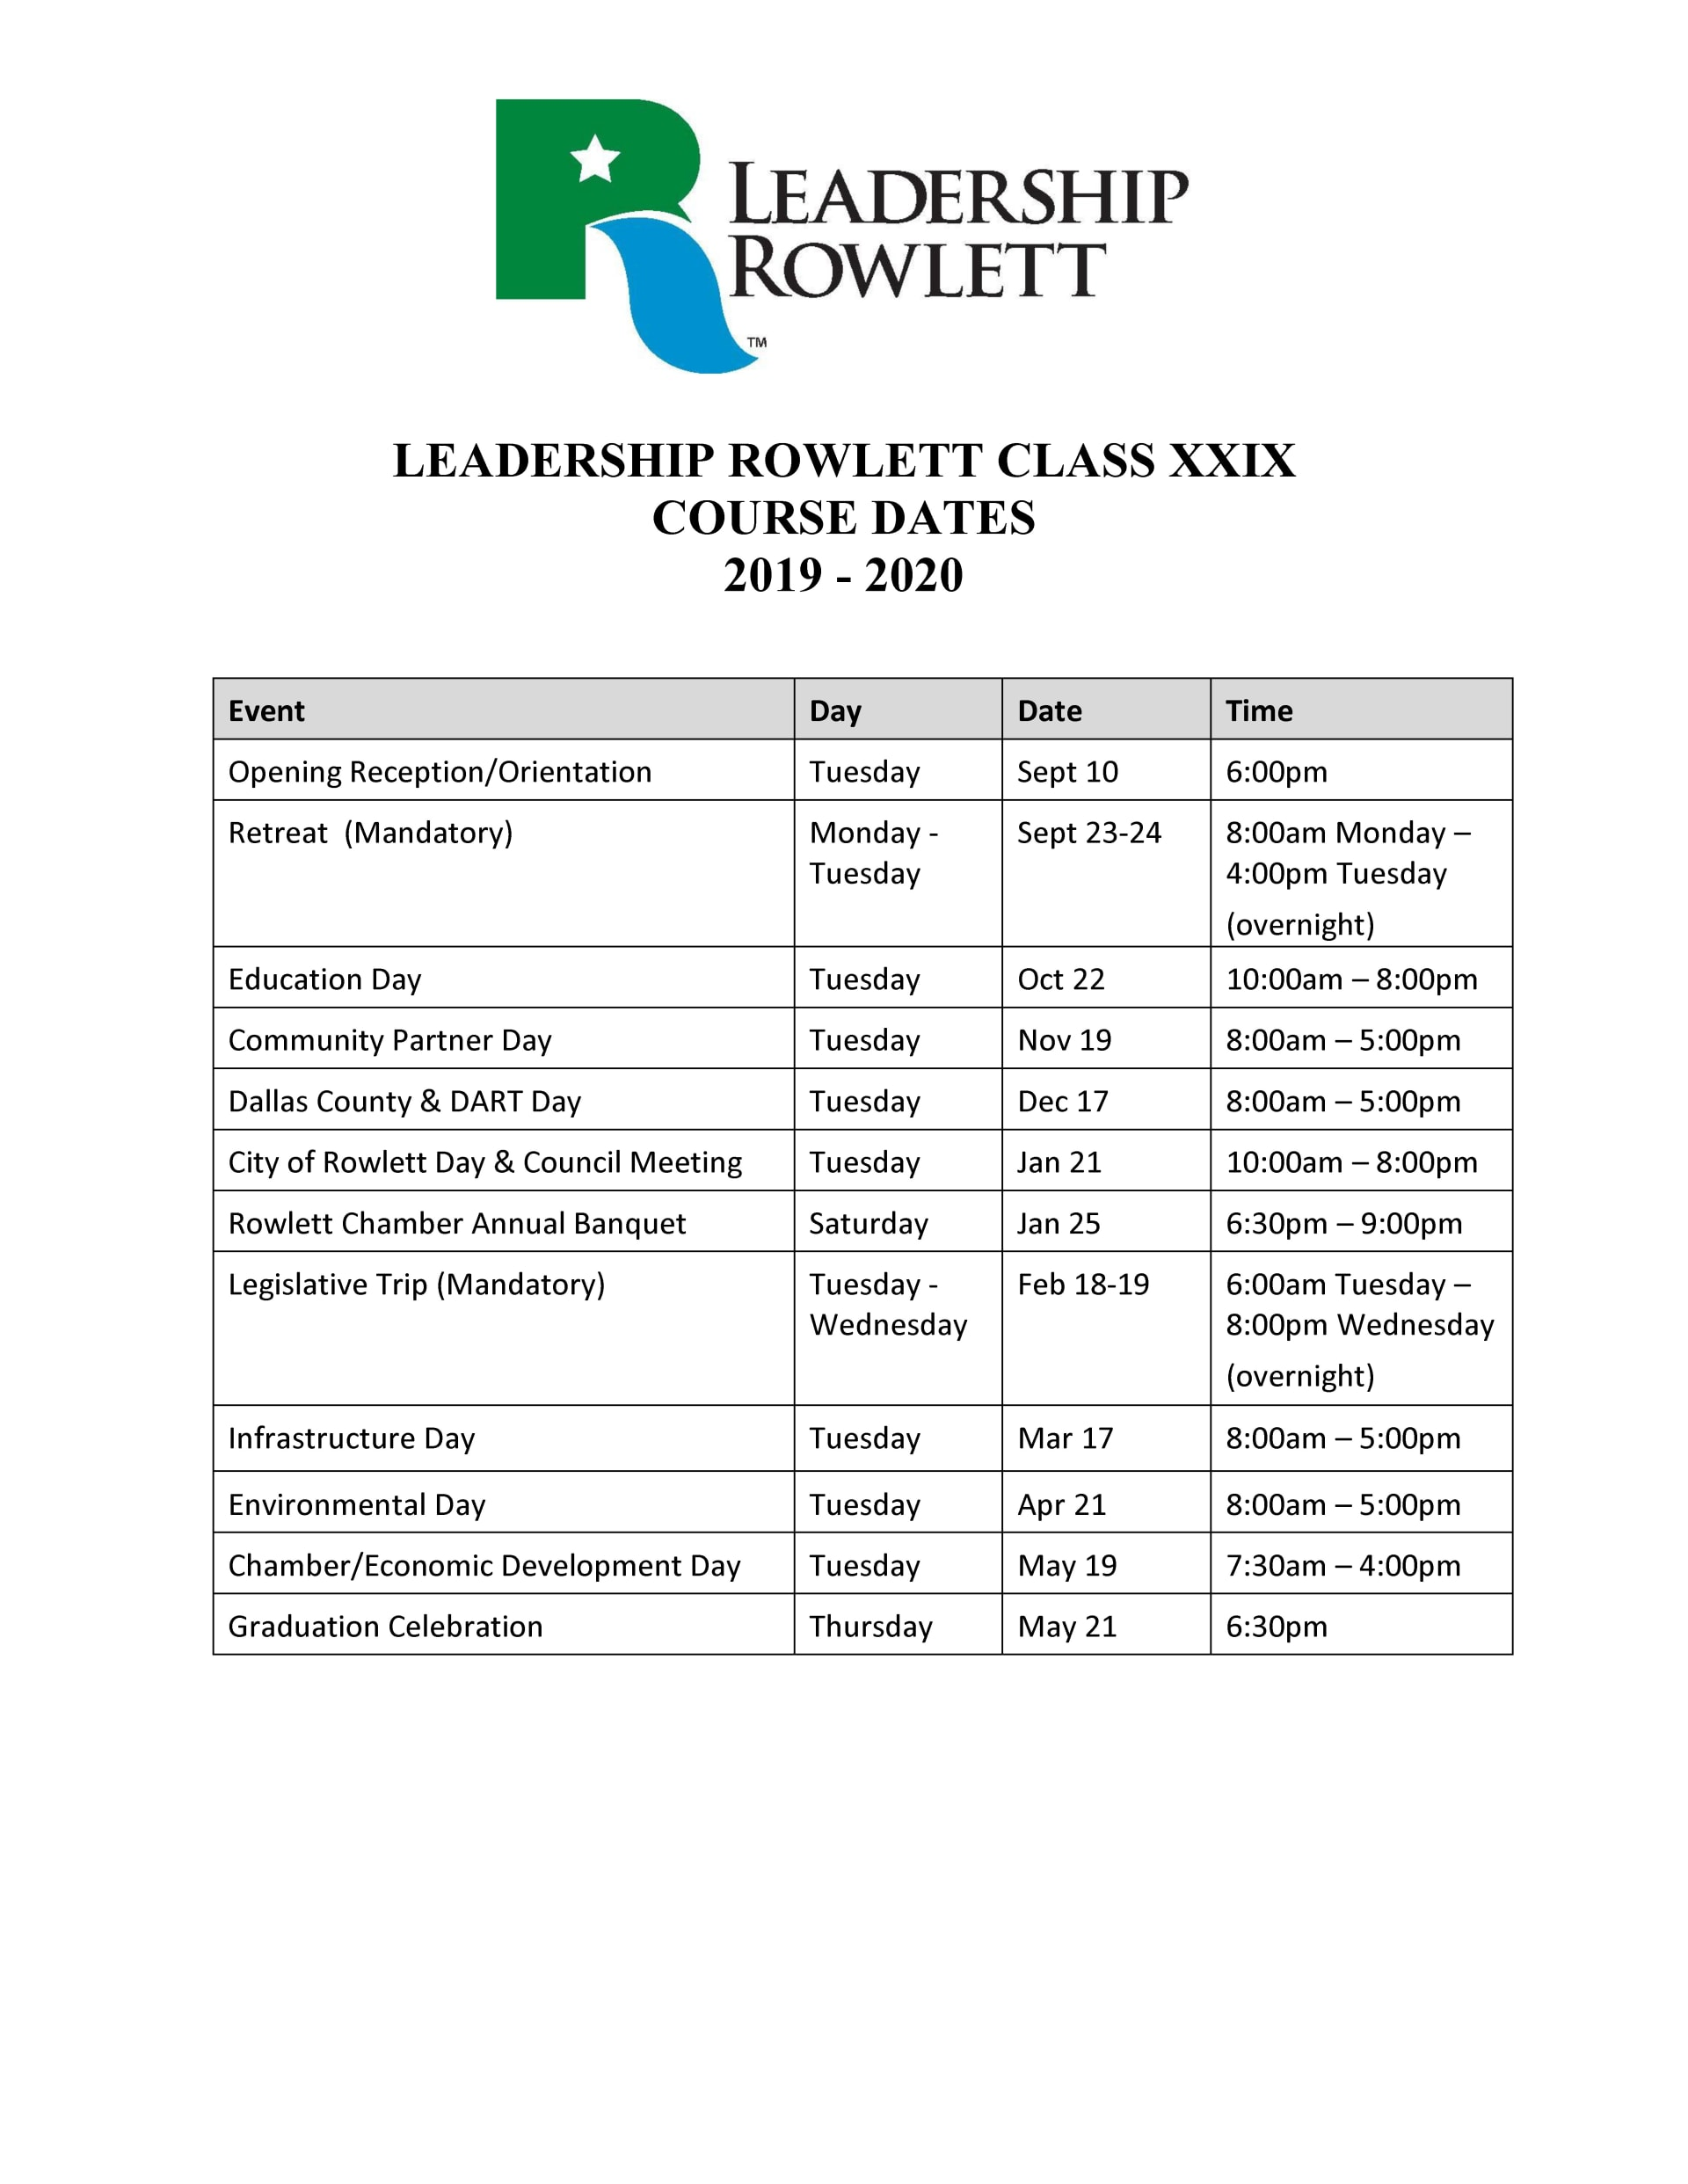 2019-2020 Leadership Rowlett Course Dates